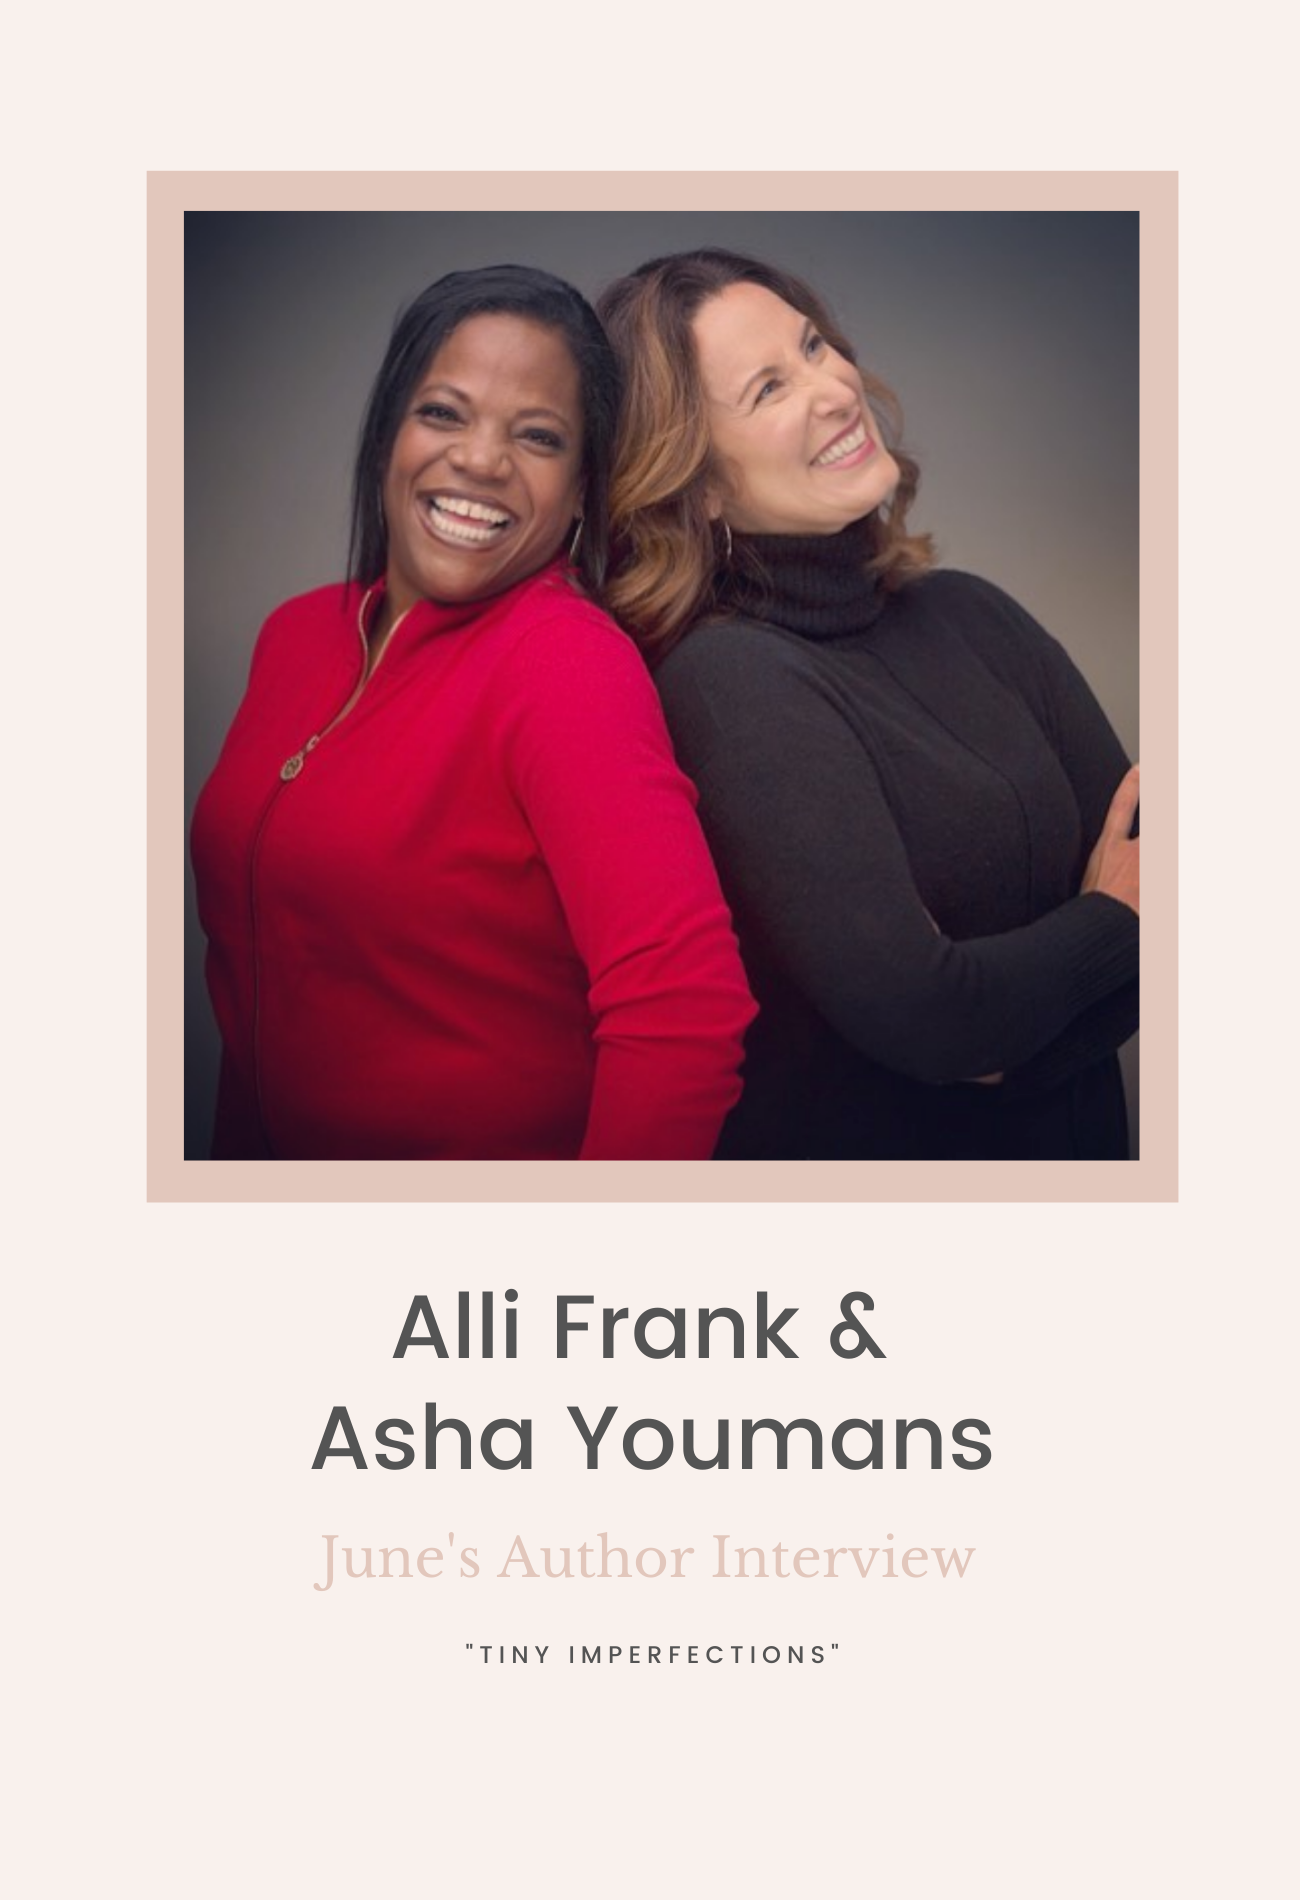 Author Interview with Alli Frank + Asha Youmans